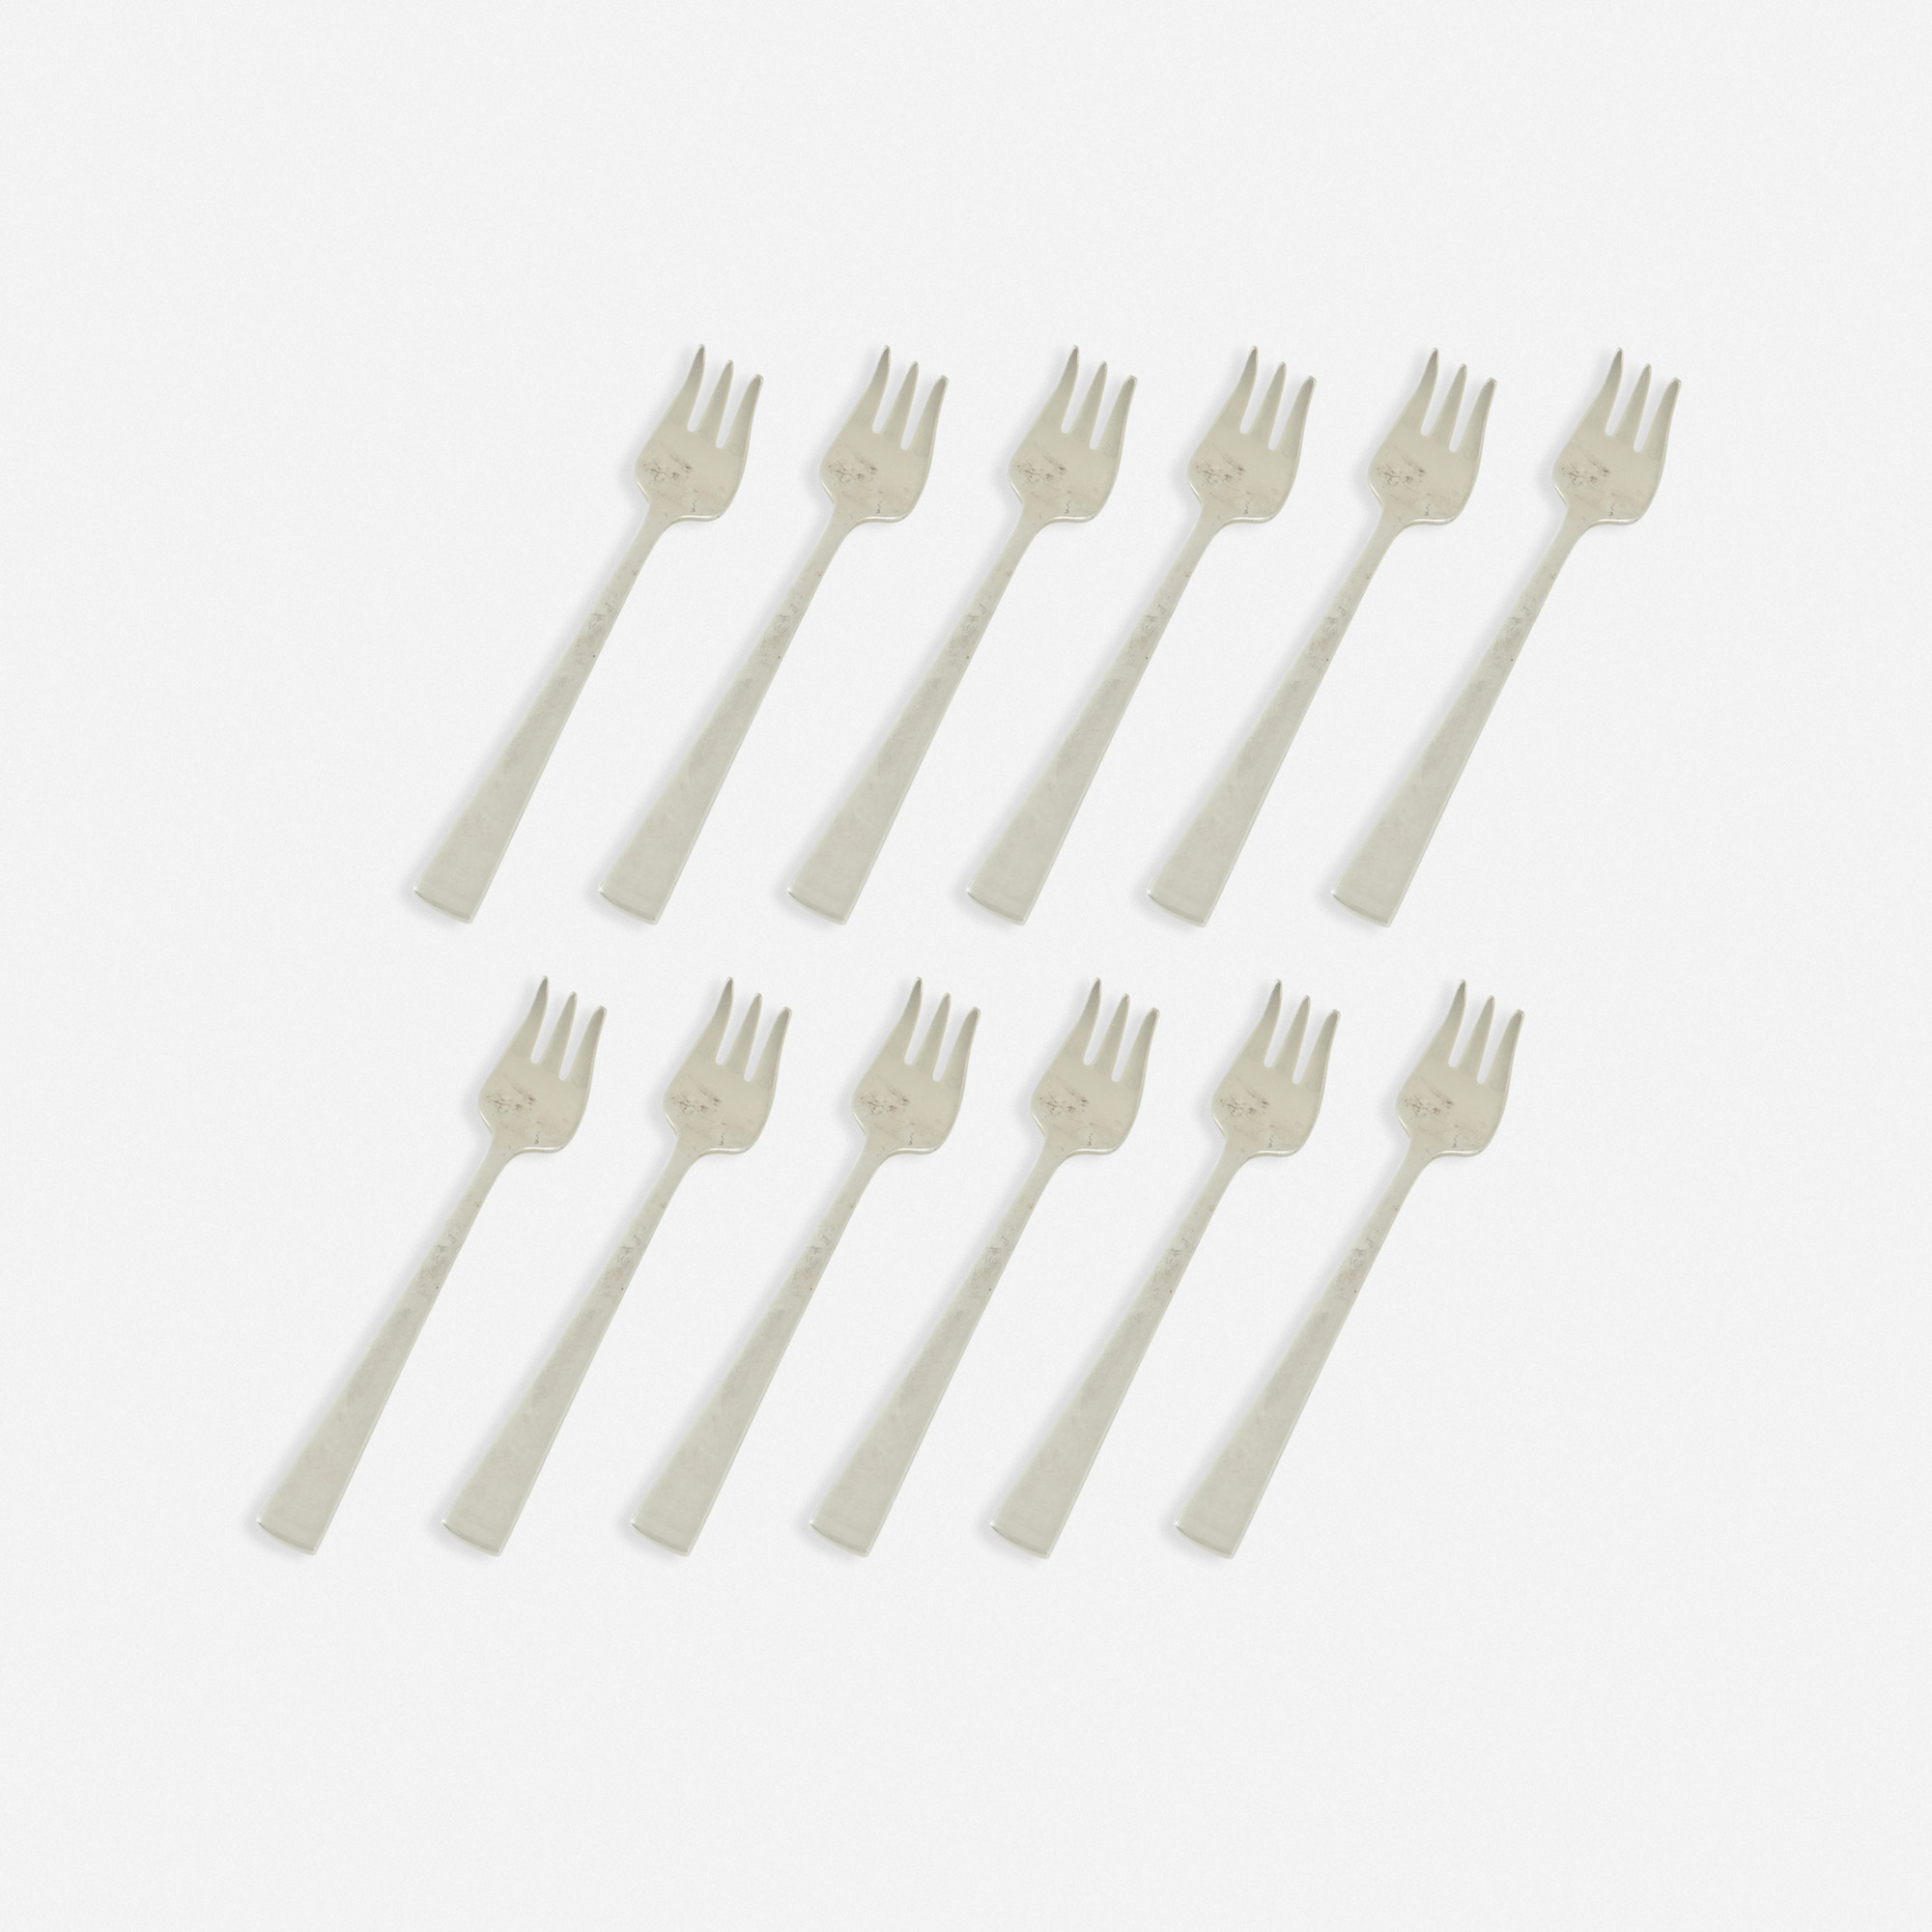 635: Garth and Ada Louise Huxtable / Oyster forks from The Four Seasons, set of twelve (1 of 1)